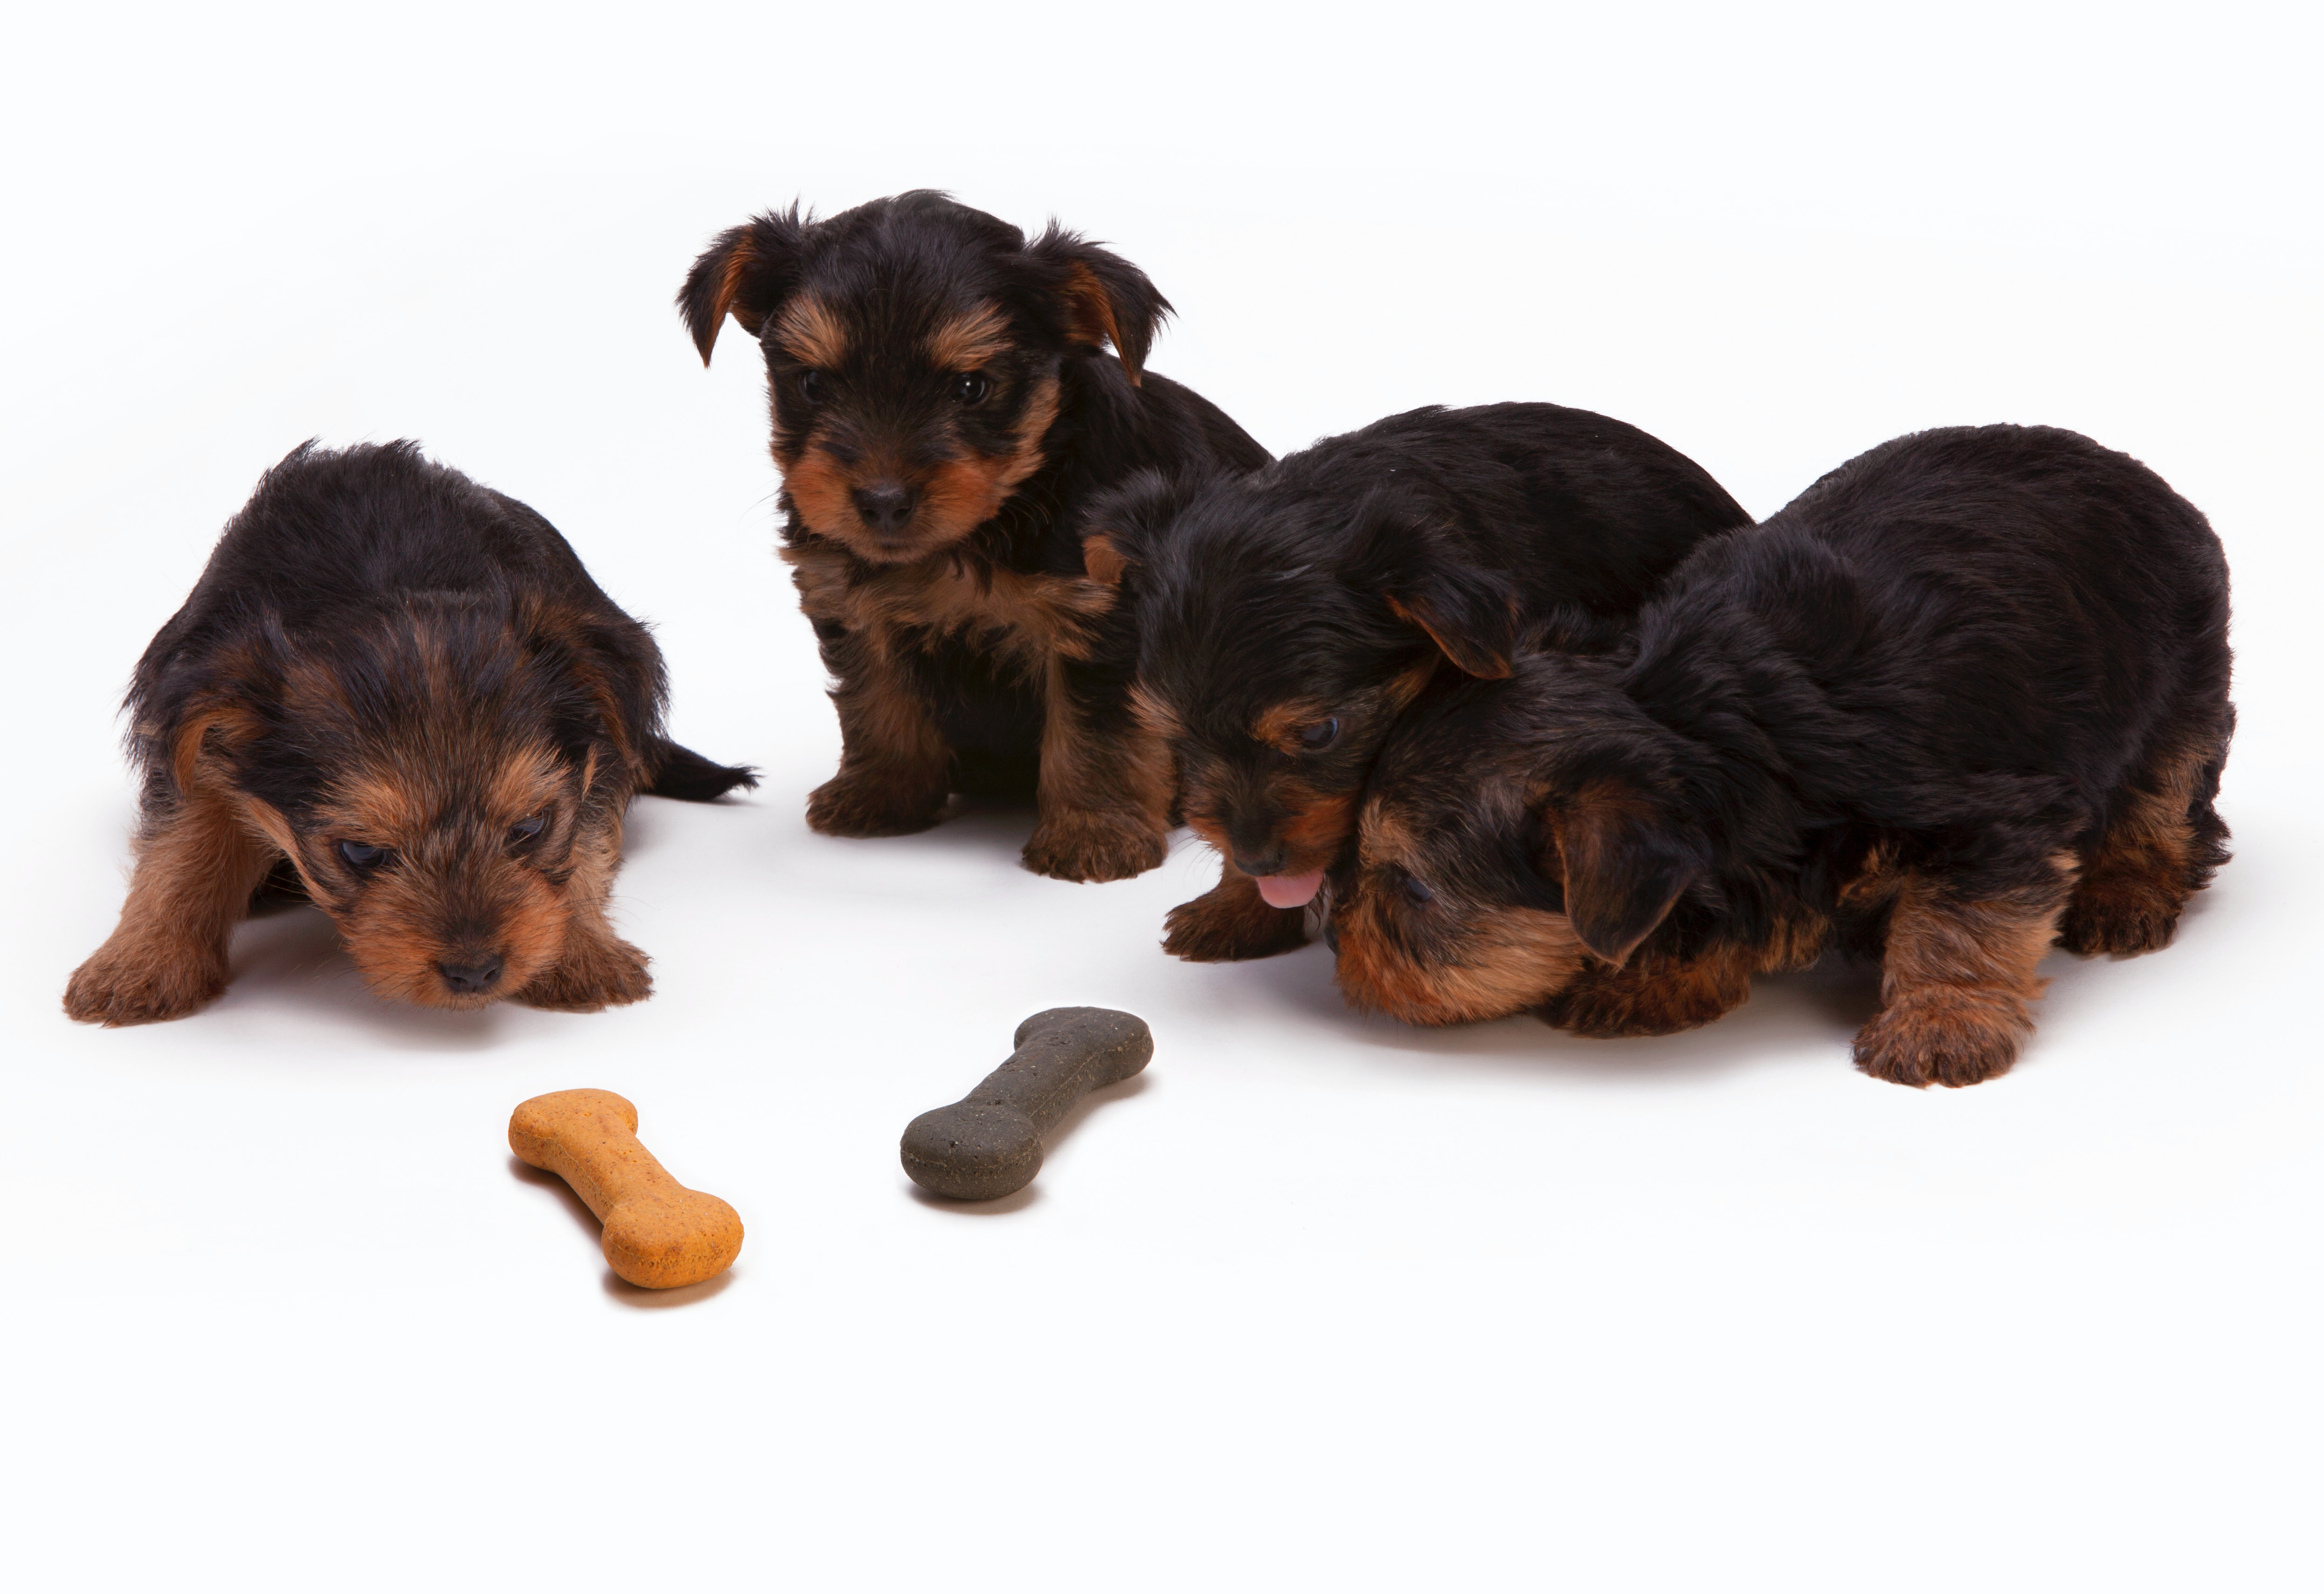 puppies and a dog biscuit